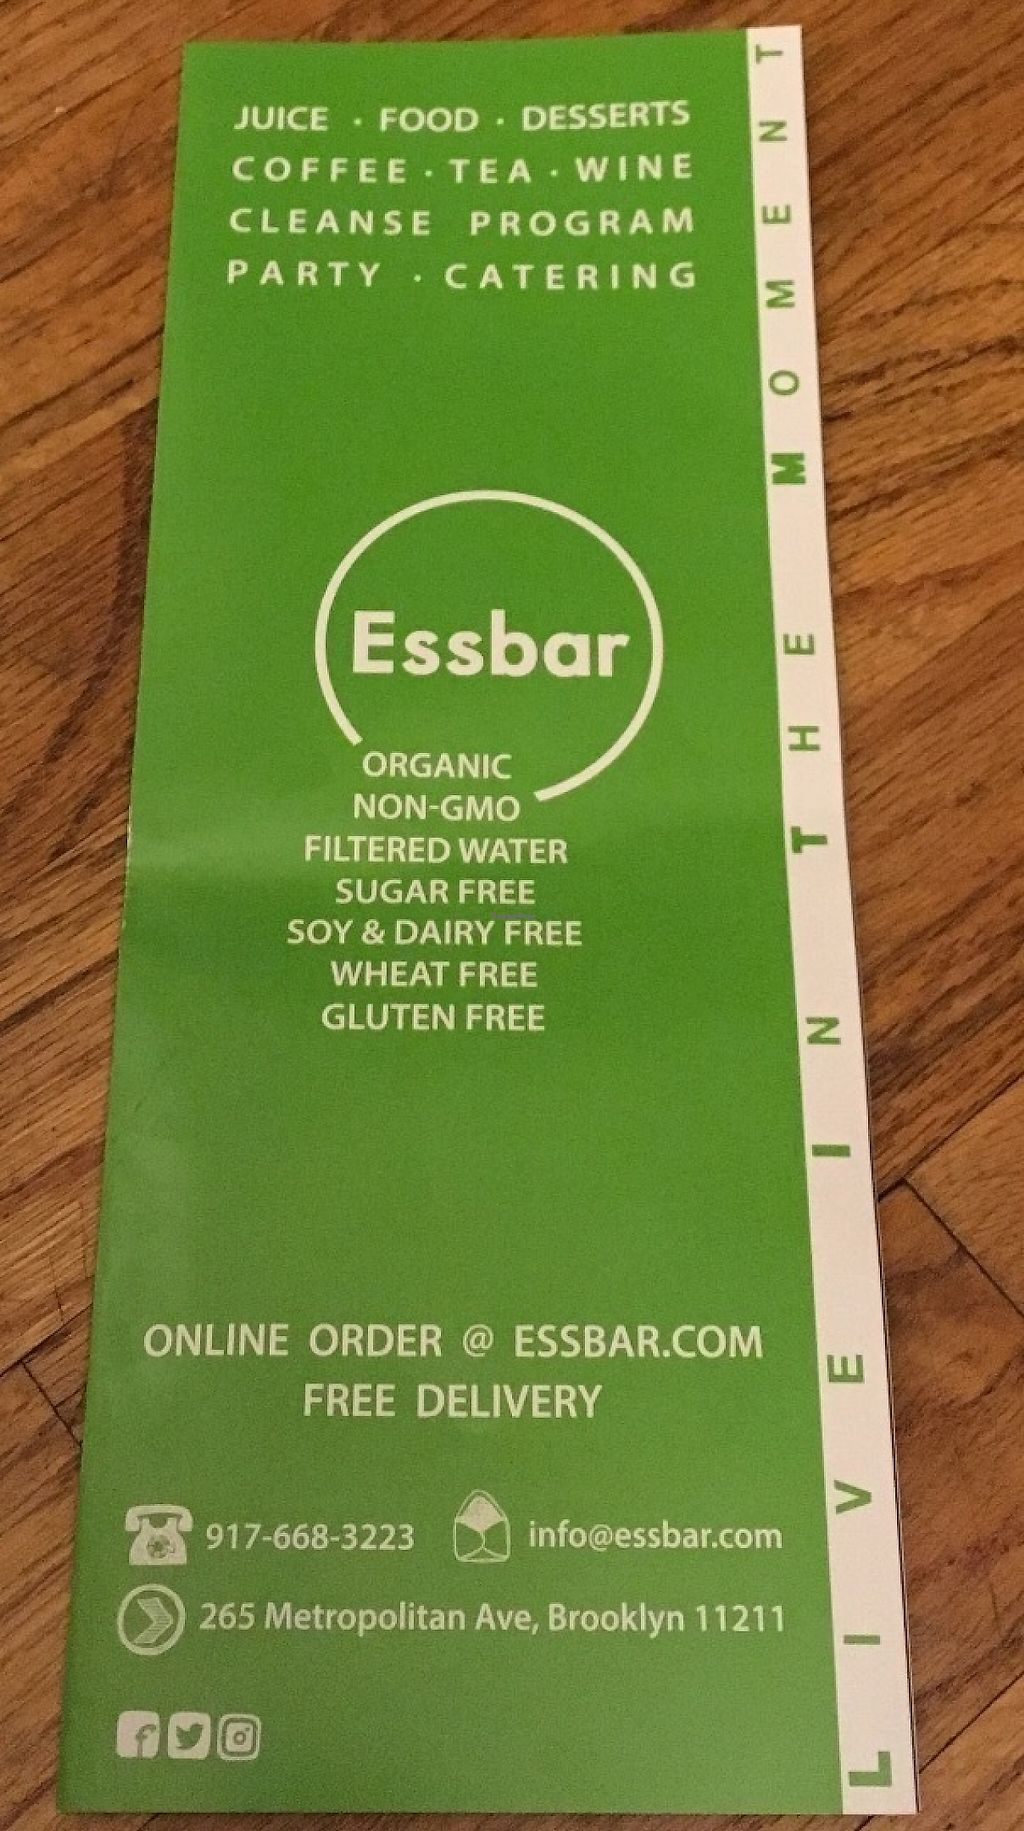 """Photo of CLOSED: Essbar  by <a href=""""/members/profile/xfoxtrotx"""">xfoxtrotx</a> <br/>Essbar is organic, gluten free, non gmo, no added sugar, soy free, dairy free, wheat free <br/> June 4, 2017  - <a href='/contact/abuse/image/91863/265566'>Report</a>"""